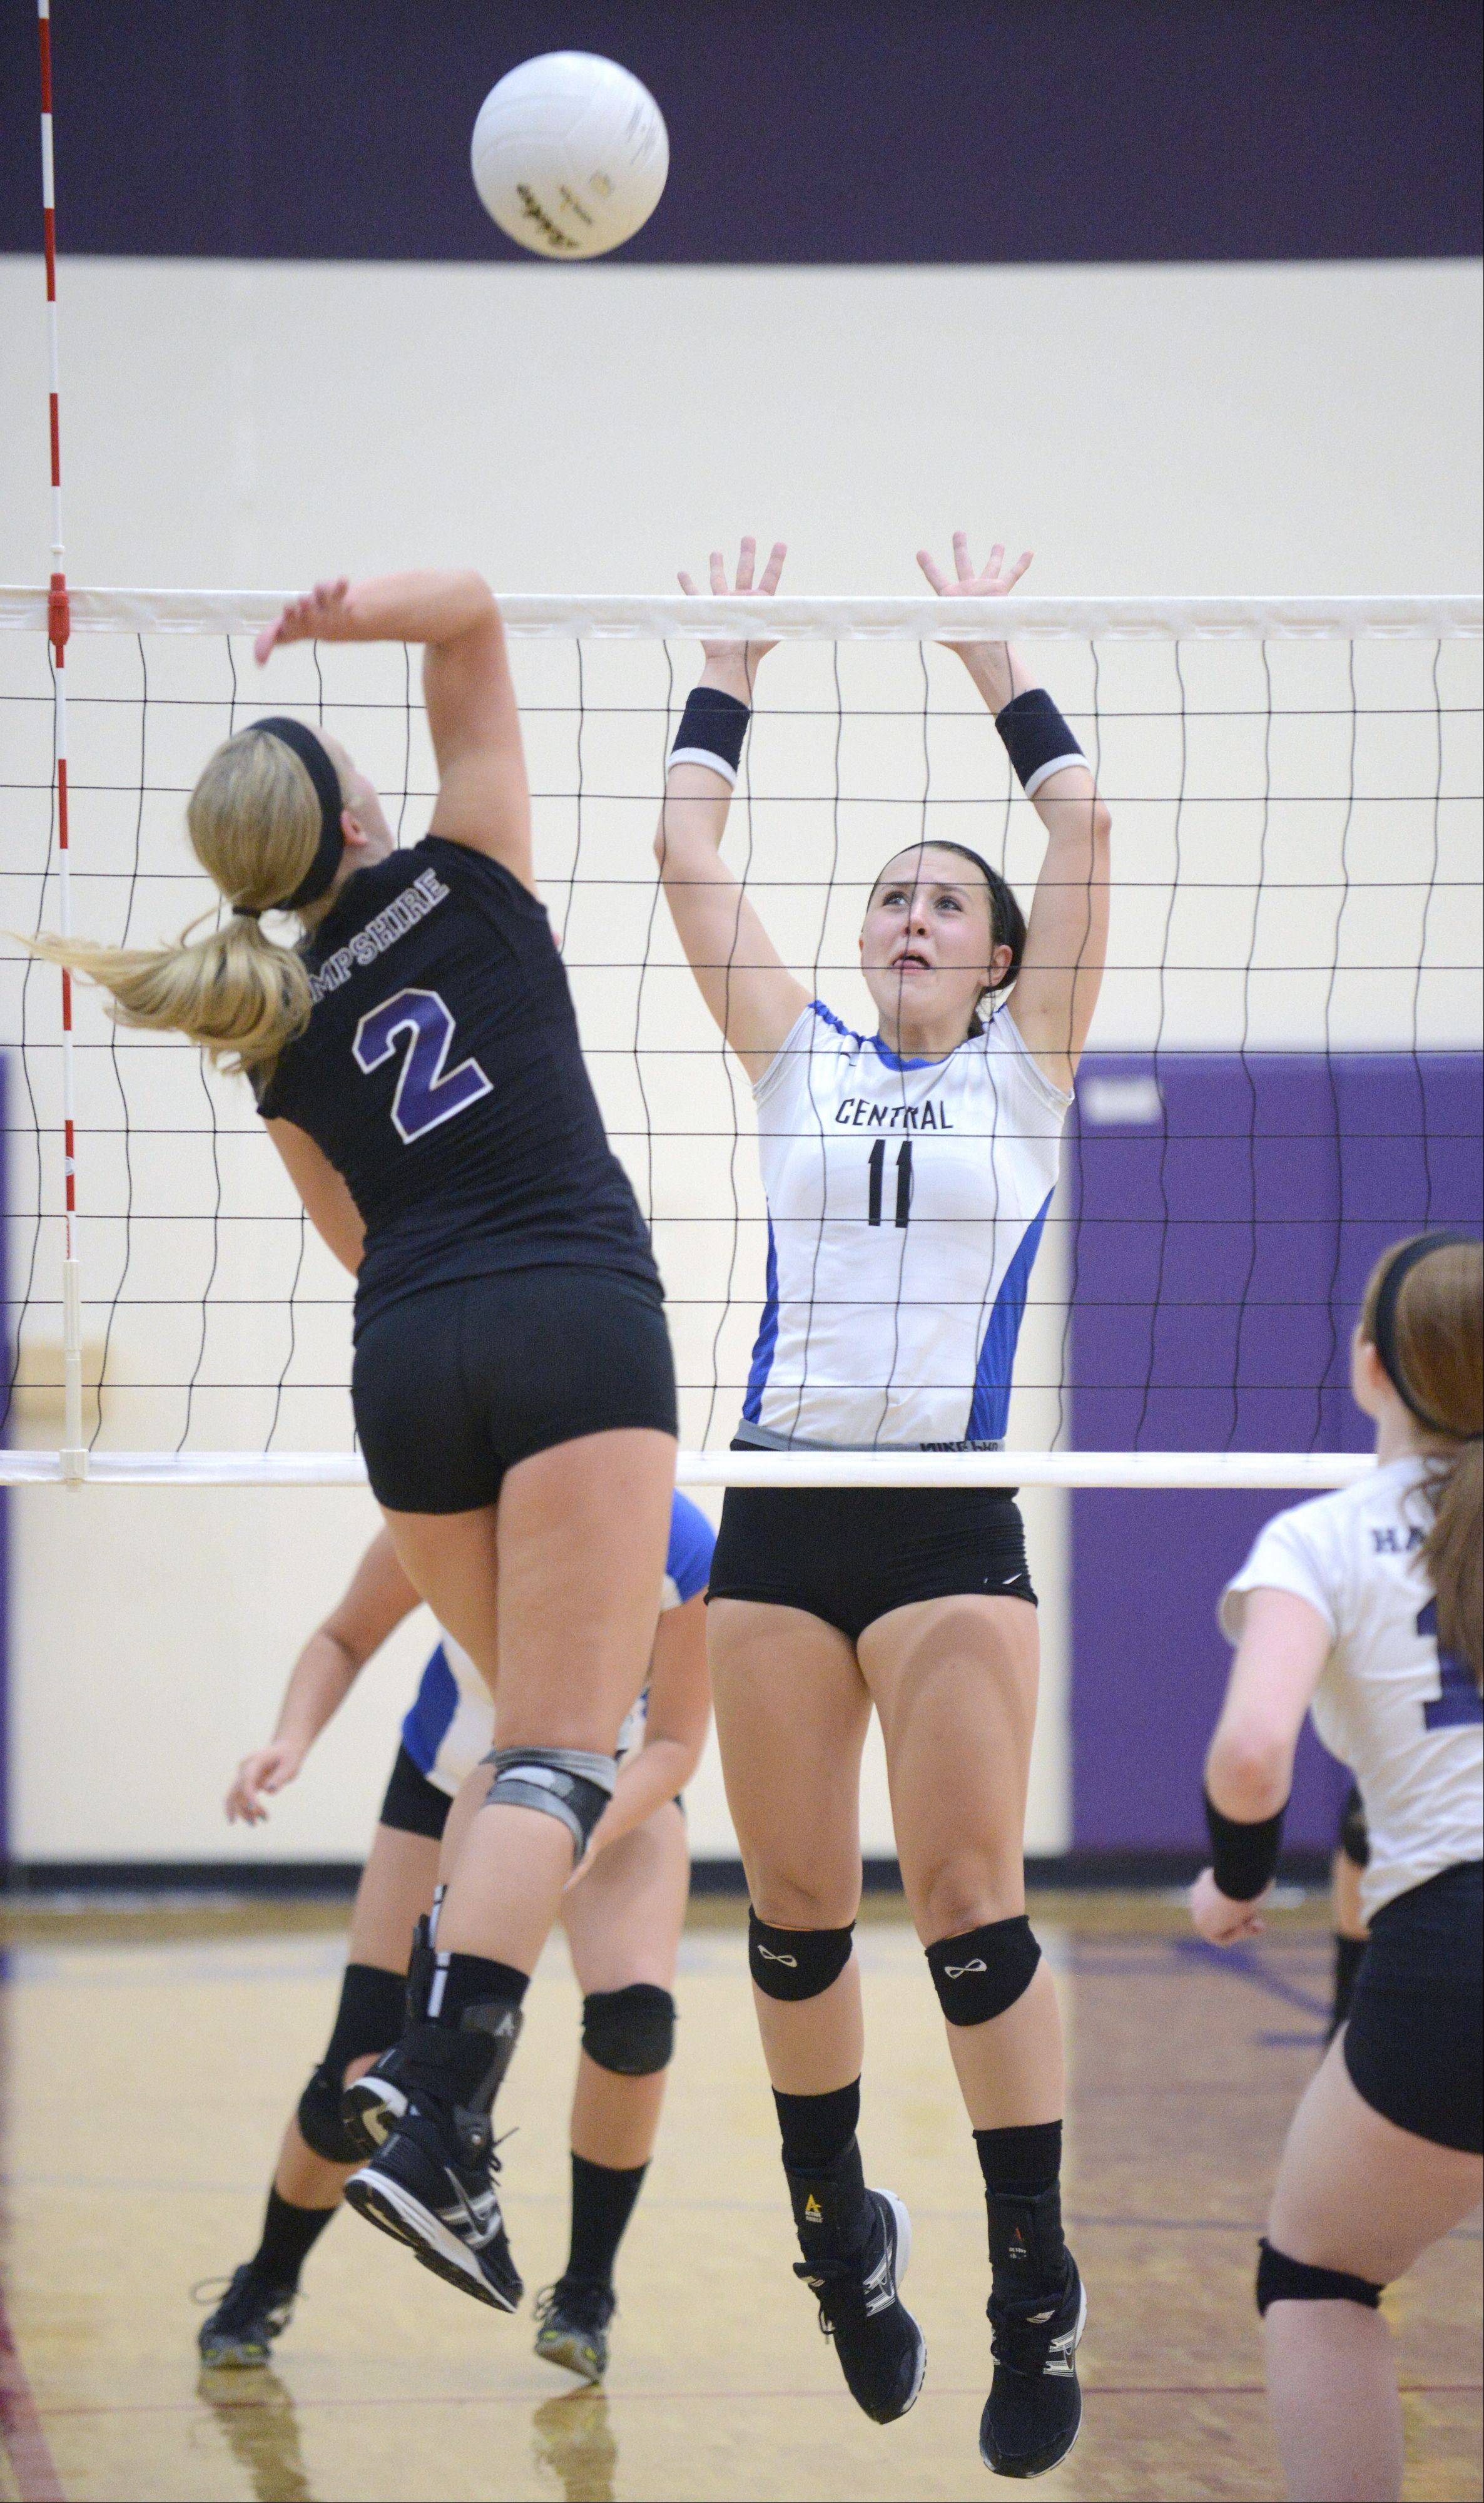 Burlington Central's Caiti Seibert preps to block a spike by Hampshire's Erin Foss in game two on Wednesday, August 28.